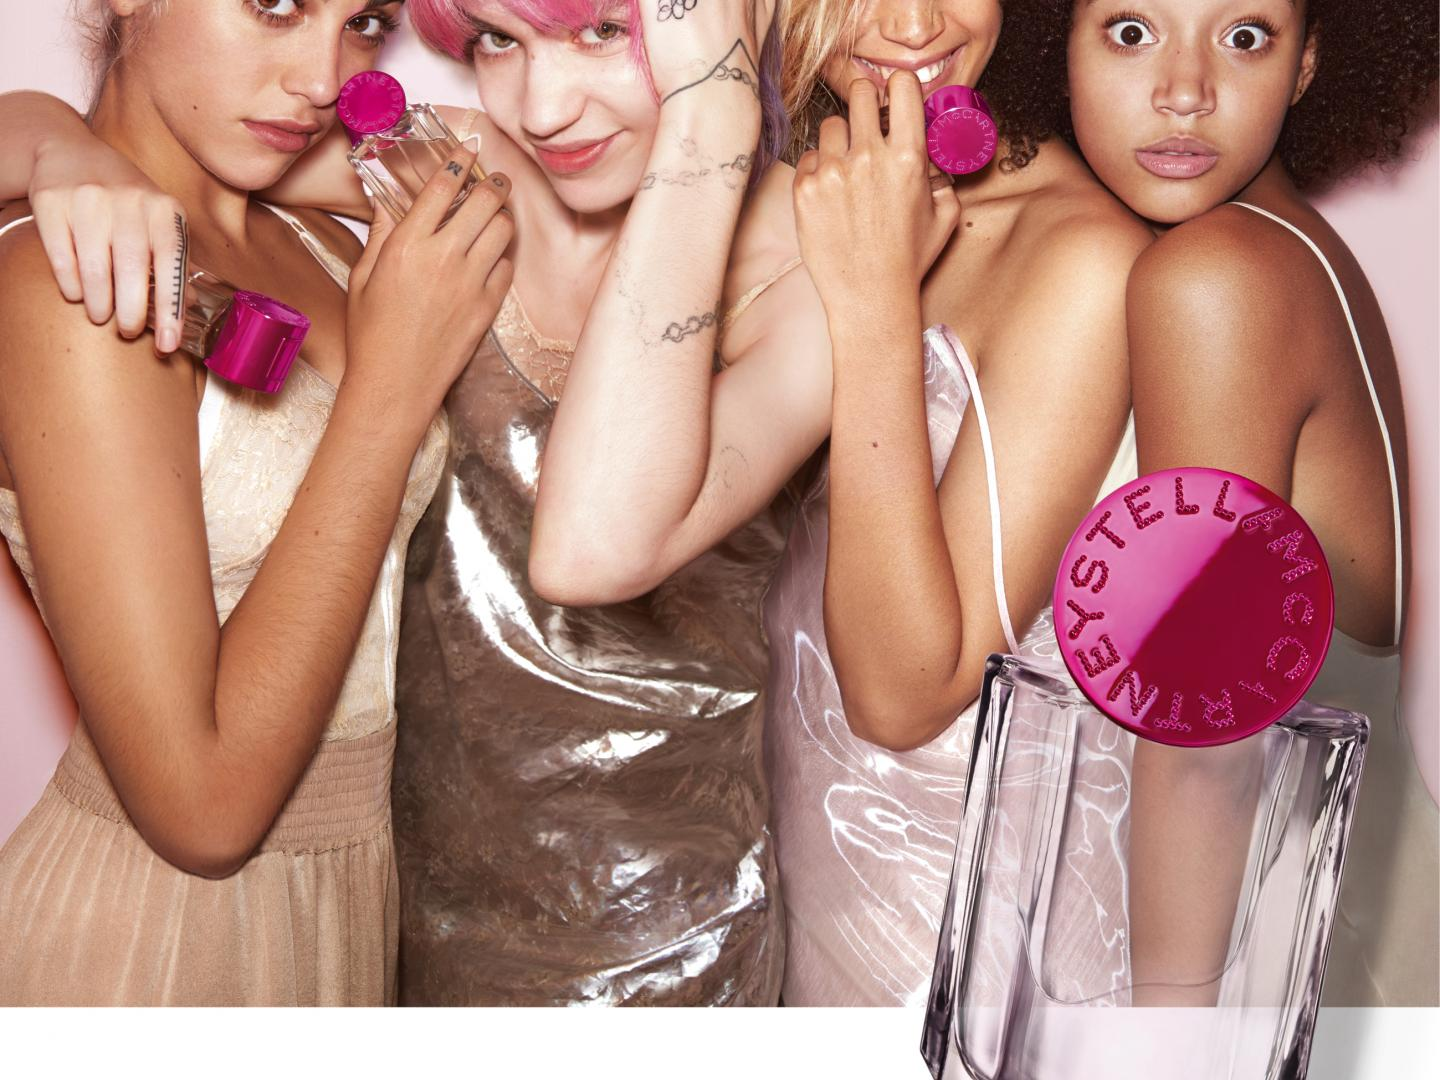 POP By Stella McCartney Fragrance Launch and Teasing Campaign Thumbnail